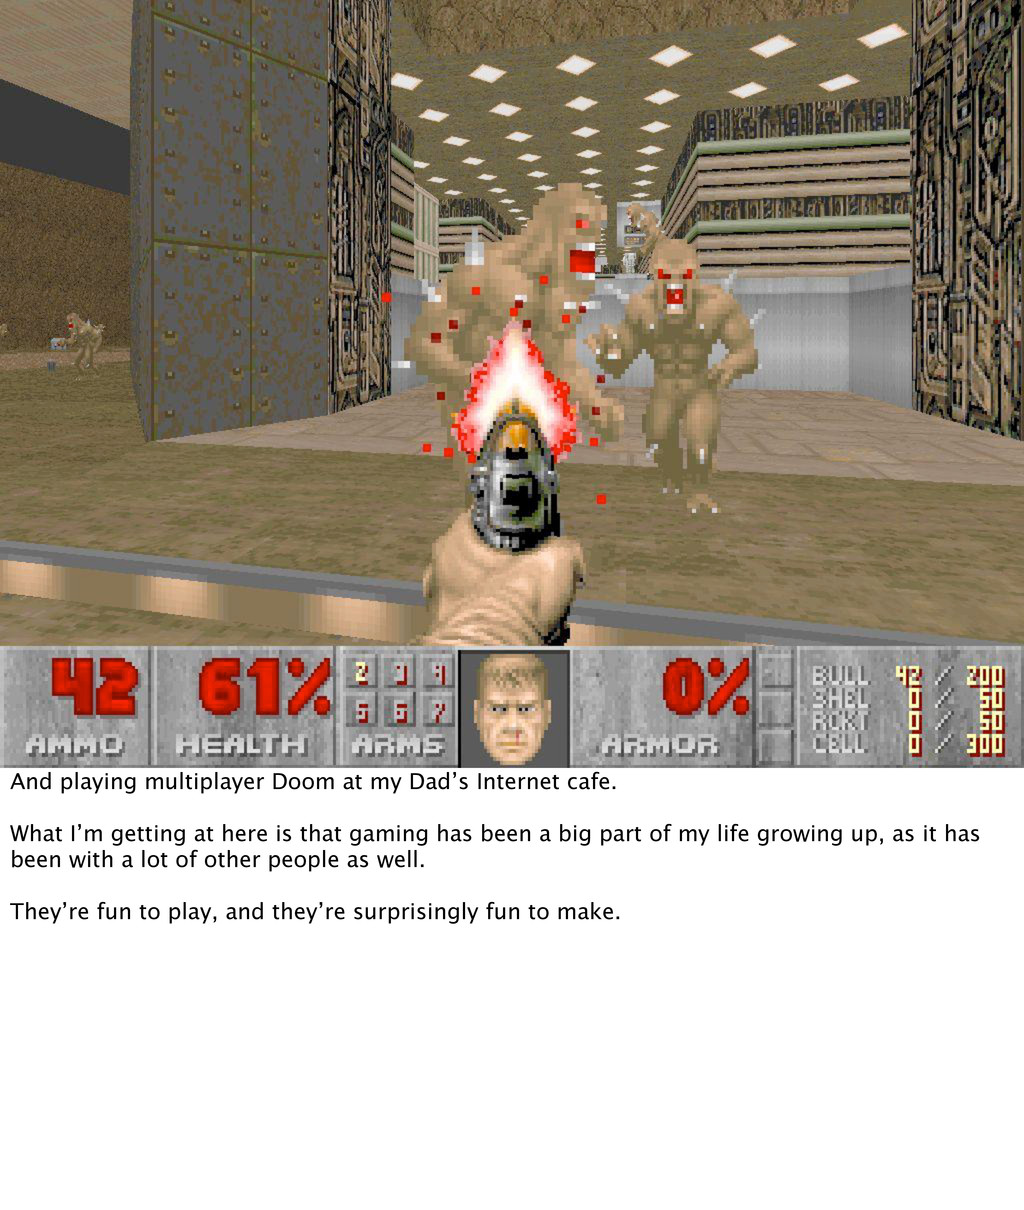 And playing multiplayer Doom at my Dad's Intern...